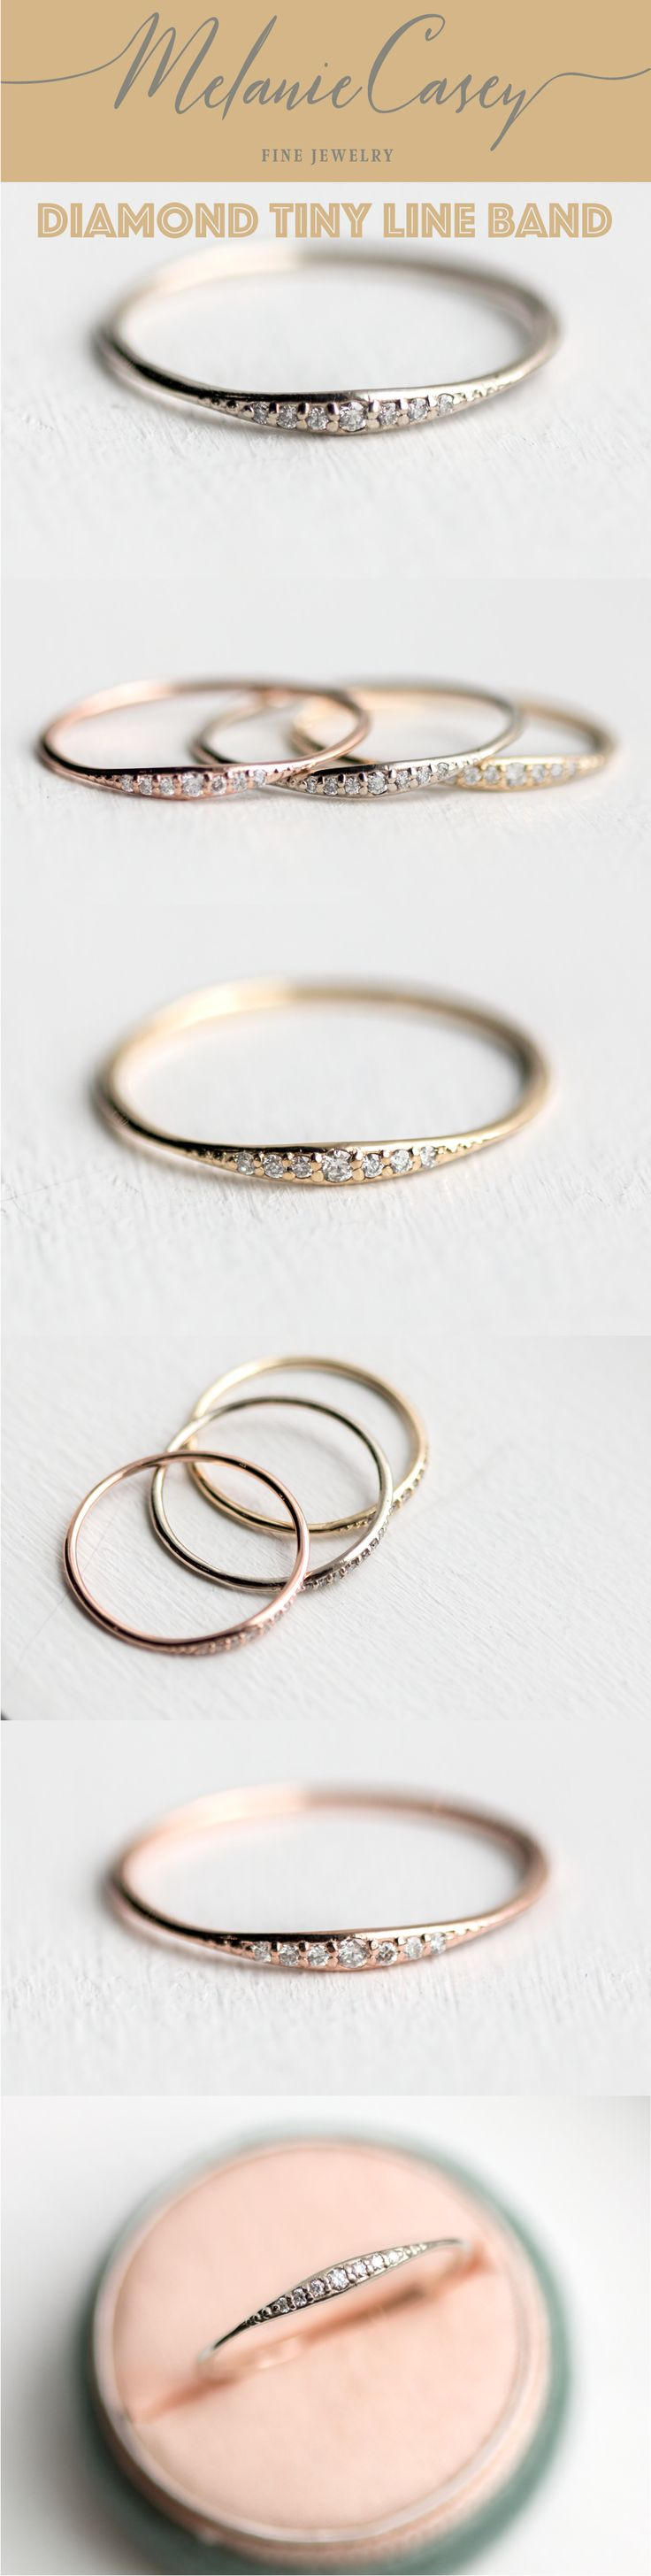 wedding ring, antique ring, vintage ring, whimsy ring, whimsical ring, dainty ring, feminine ring, elegant ring, gold ring, white diamond ring, delicate ring, handmade ring, stunning ring, stacking ring, Melanie Casey ring, perfect ring, vintage jewelry, antique ring, vintage inspired ring, antique inspired ring, fairytale ring, magical ring, handmade jewelry, jewelry made in the USA, made with love, diamond line, diamond band, rose gold band, diamond tiny line band, wedding band